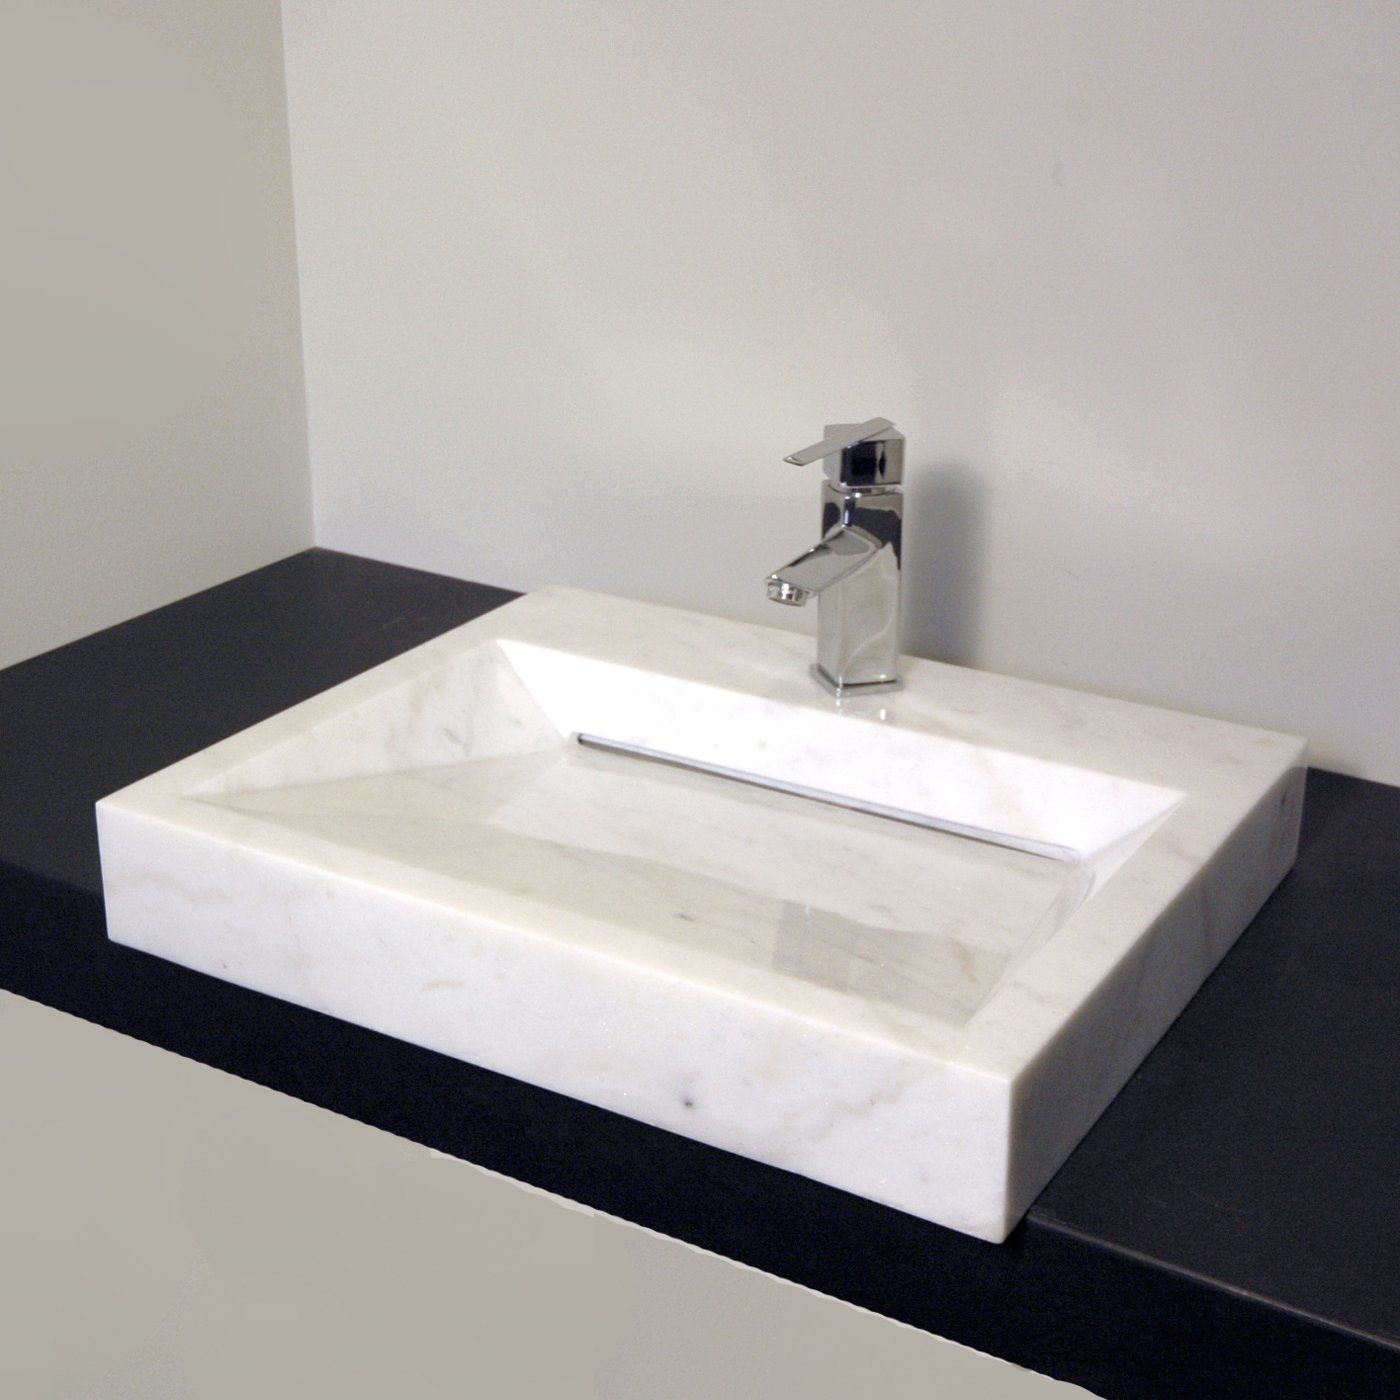 Cantrio Koncepts Stone Series Bianco Carrera Vessel Sink At Lowe S Canada Find Our Selection Of Bathroom Sinks The Lowest Price Guaranteed With